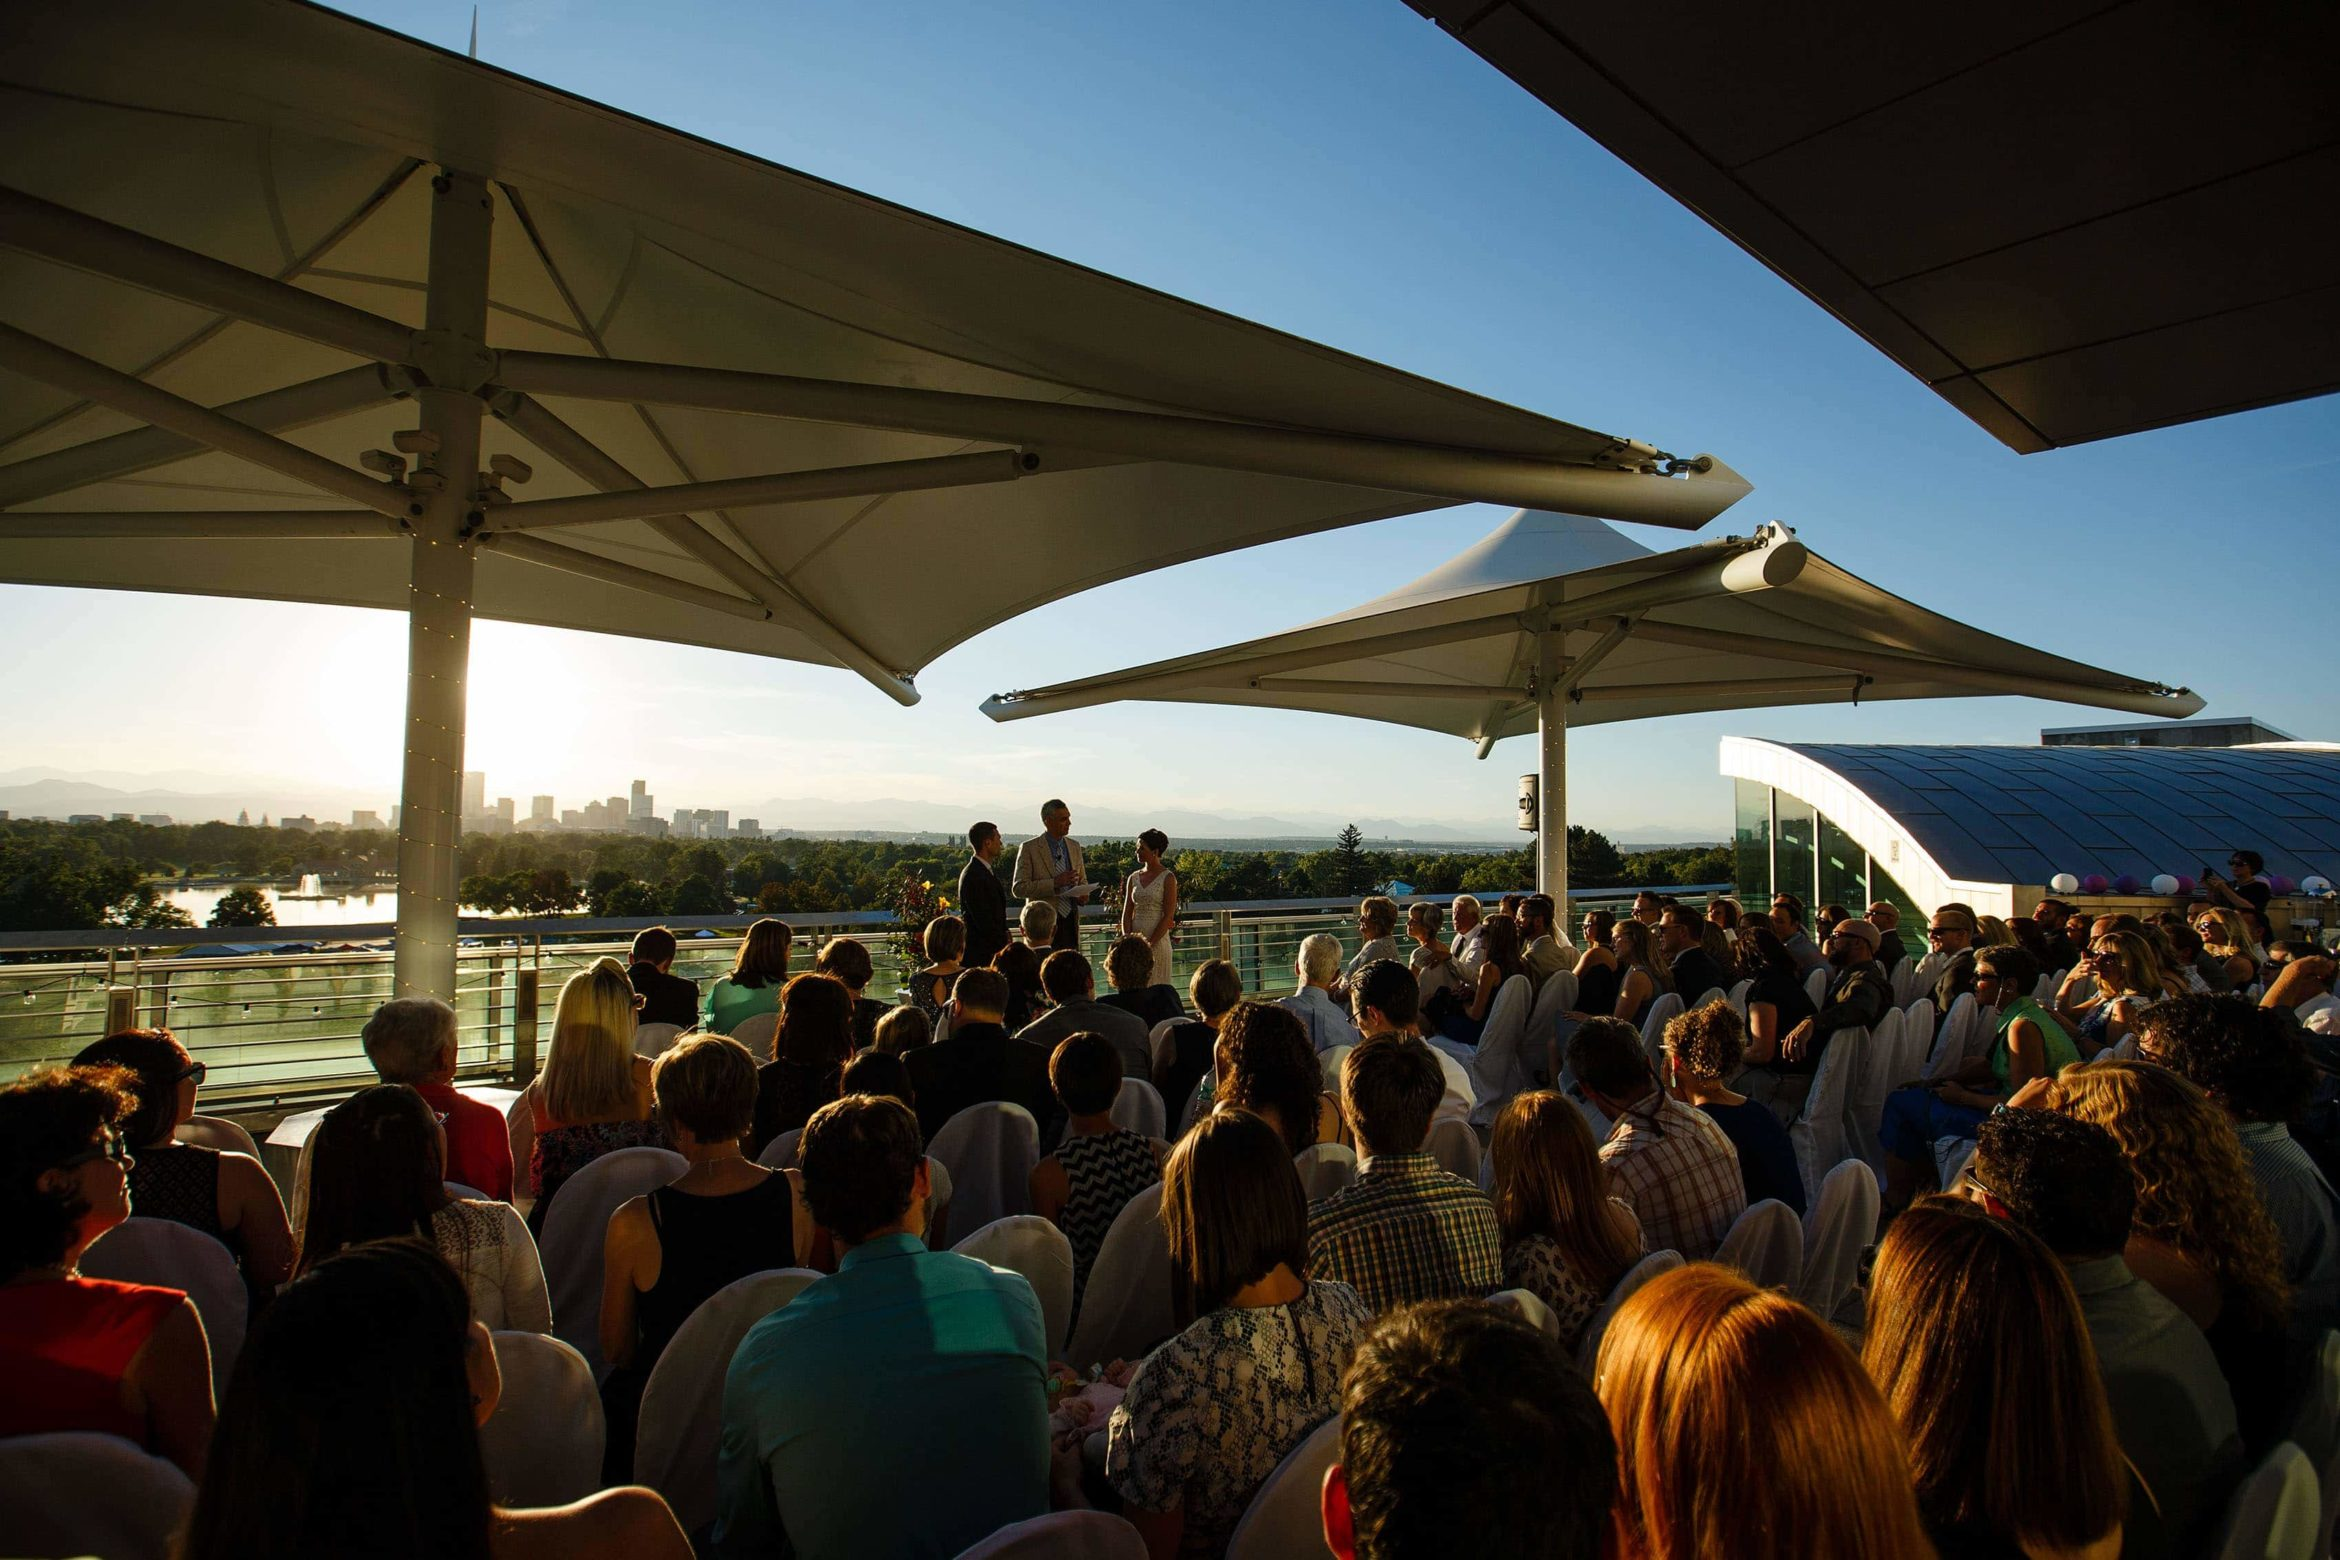 Denver Museum of Nature and Science rooftop wedding ceremony at sunset